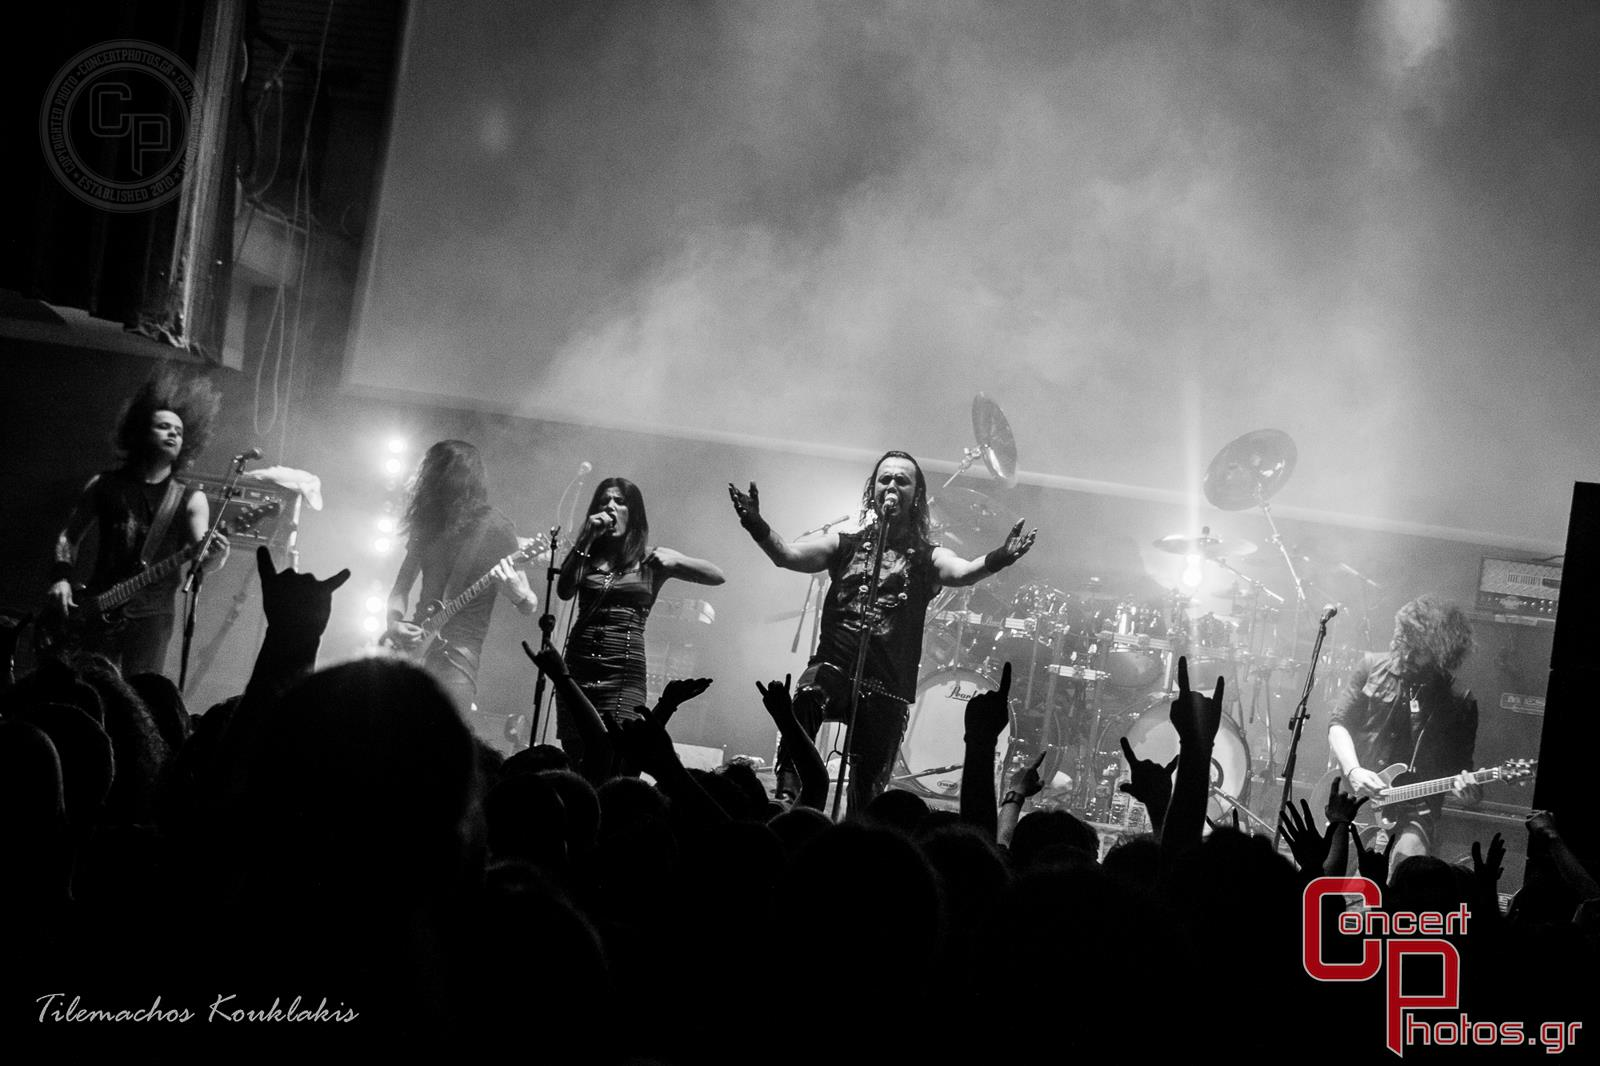 Moonspell-Moonspell photographer:  - IMG_6476